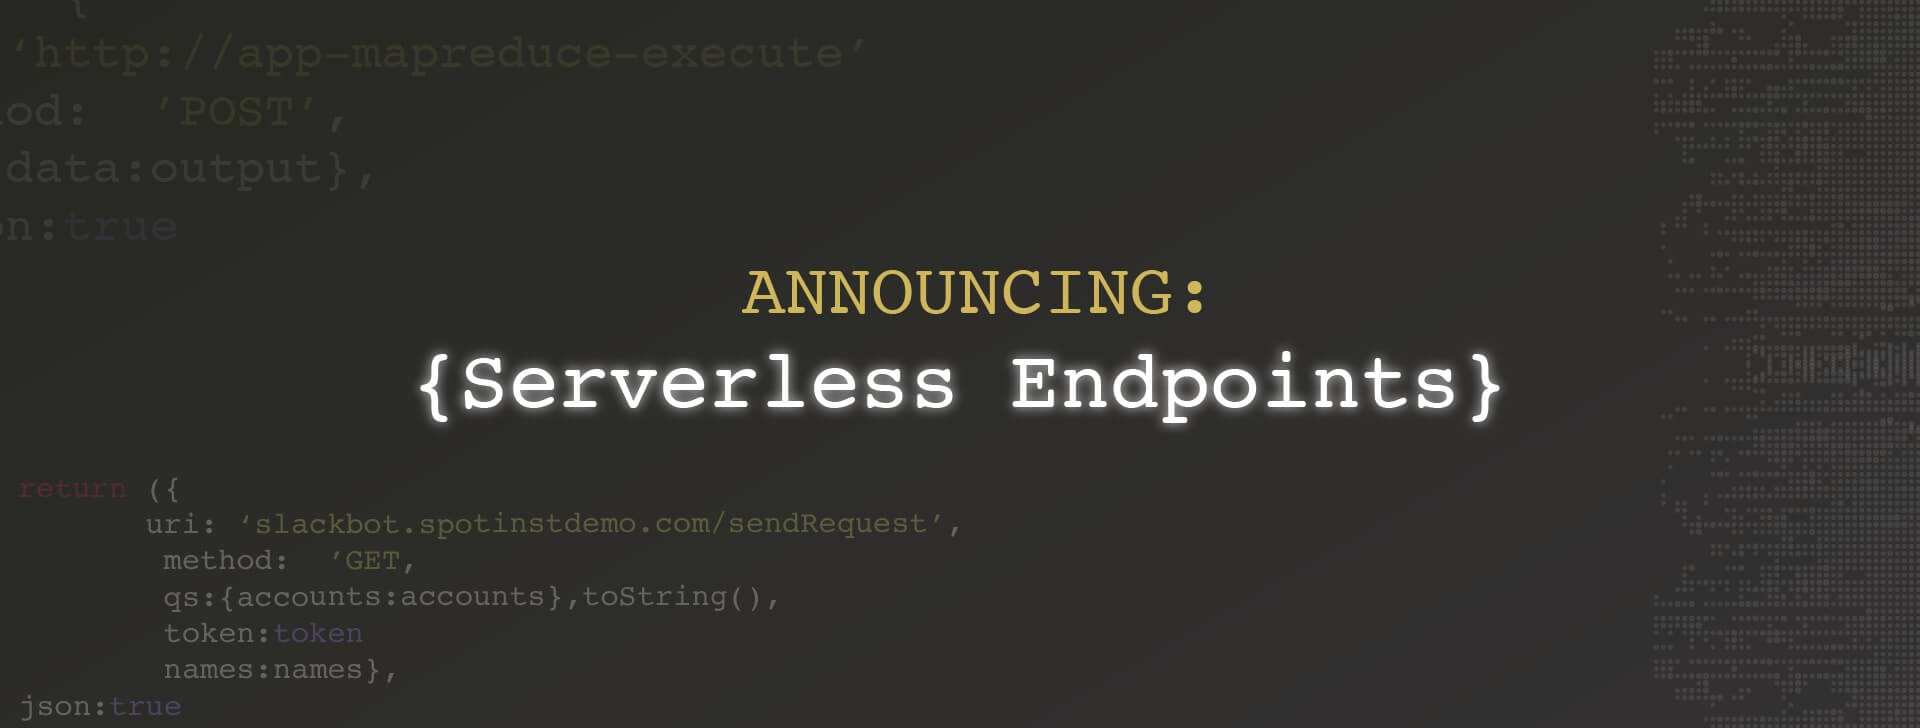 Announcing: Spotinst Serverless Endpoints